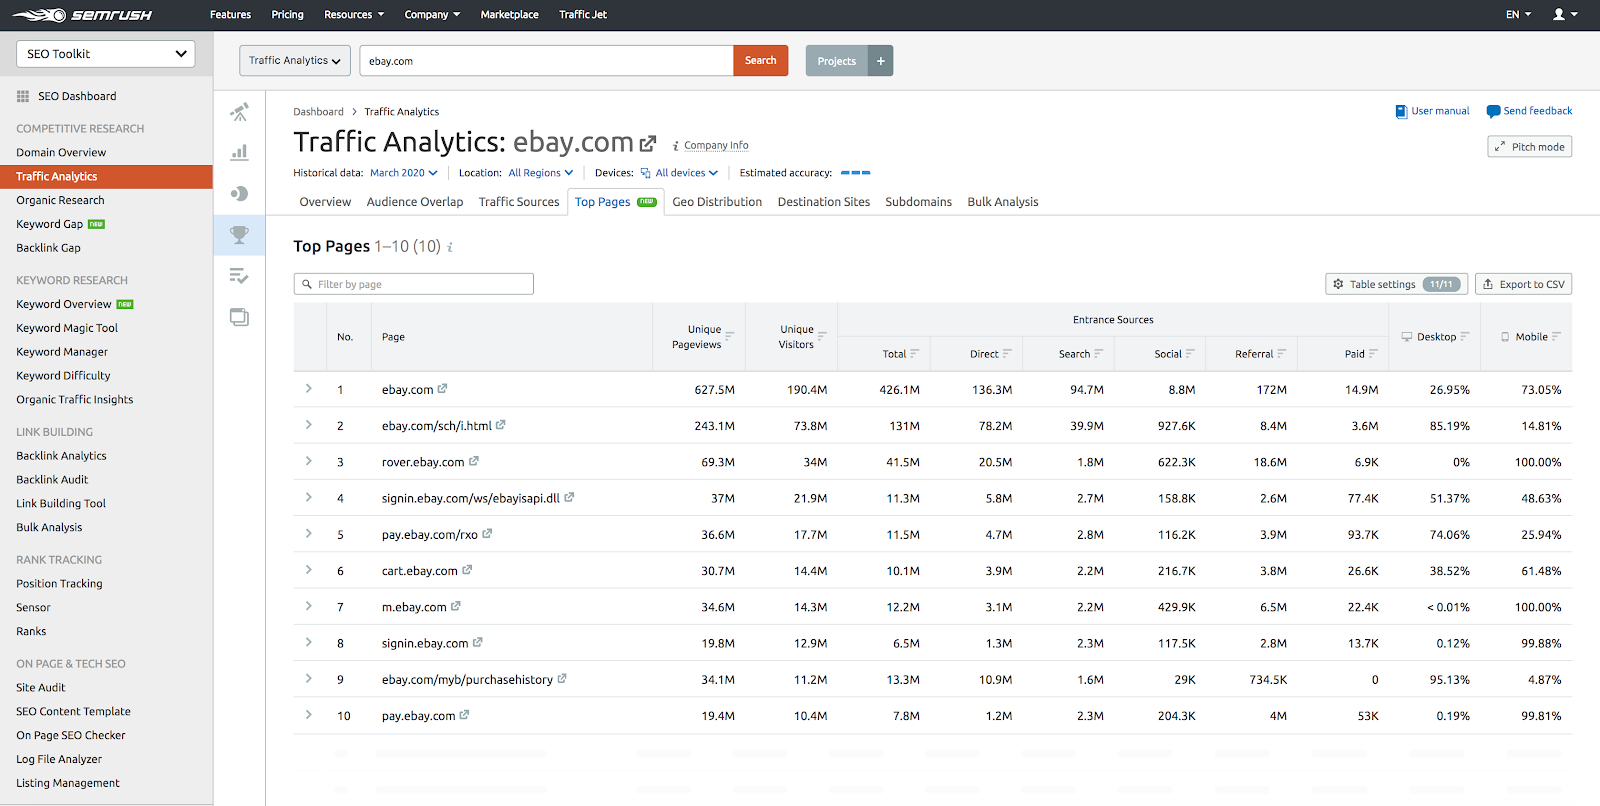 Data example from the Traffic Analytics tool